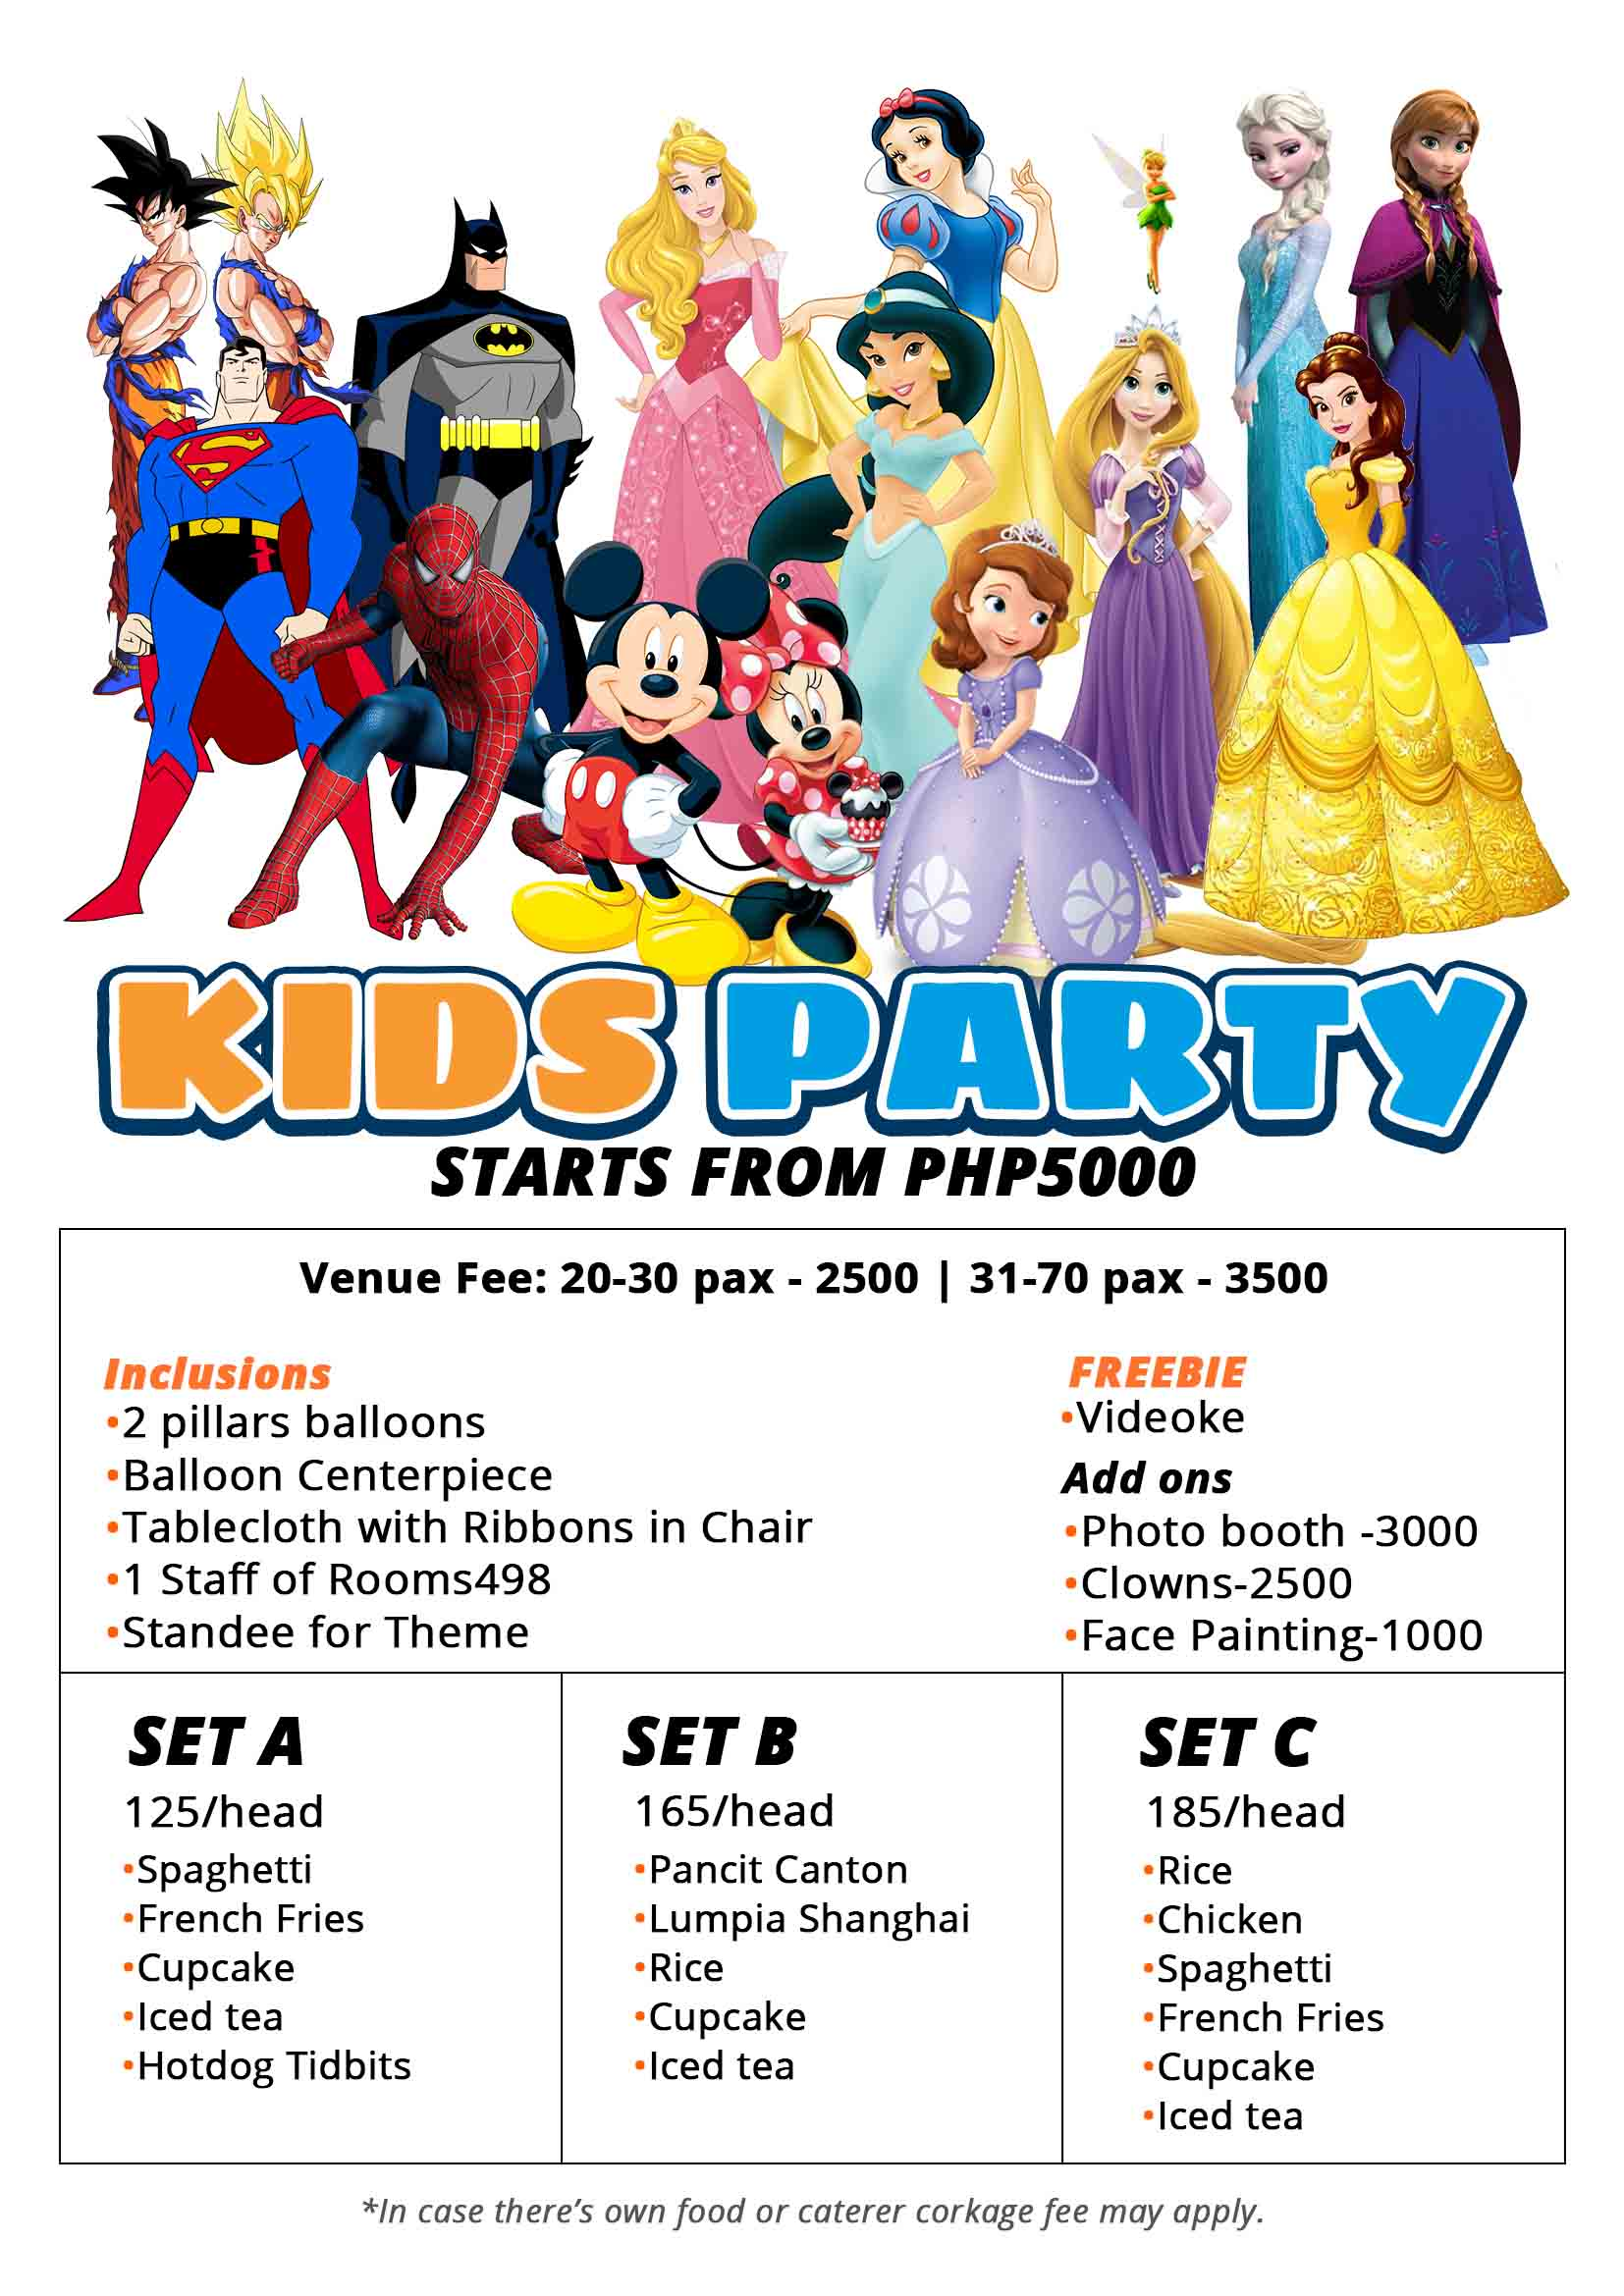 Affordable kids party venue with all in packages rooms498.com